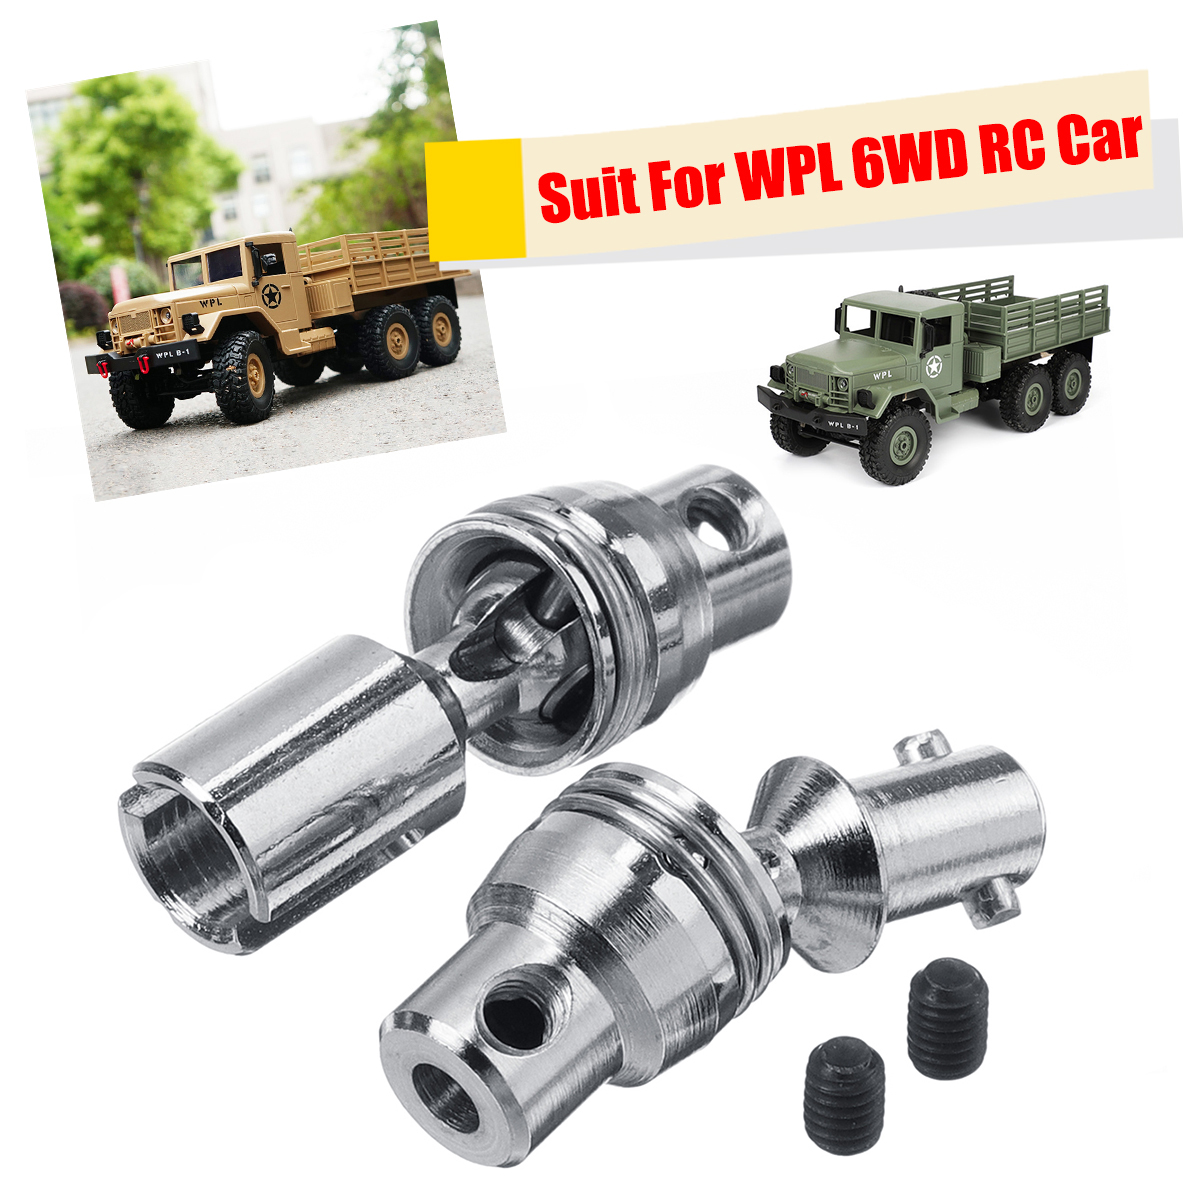 Upgrade Spare Part Metal Drive Rear Axle Shaft Set For WPL 1/16 6WD B16 RC Truck Car Durable Perfectly Fits Parts & Accs ReplaceUpgrade Spare Part Metal Drive Rear Axle Shaft Set For WPL 1/16 6WD B16 RC Truck Car Durable Perfectly Fits Parts & Accs Replace